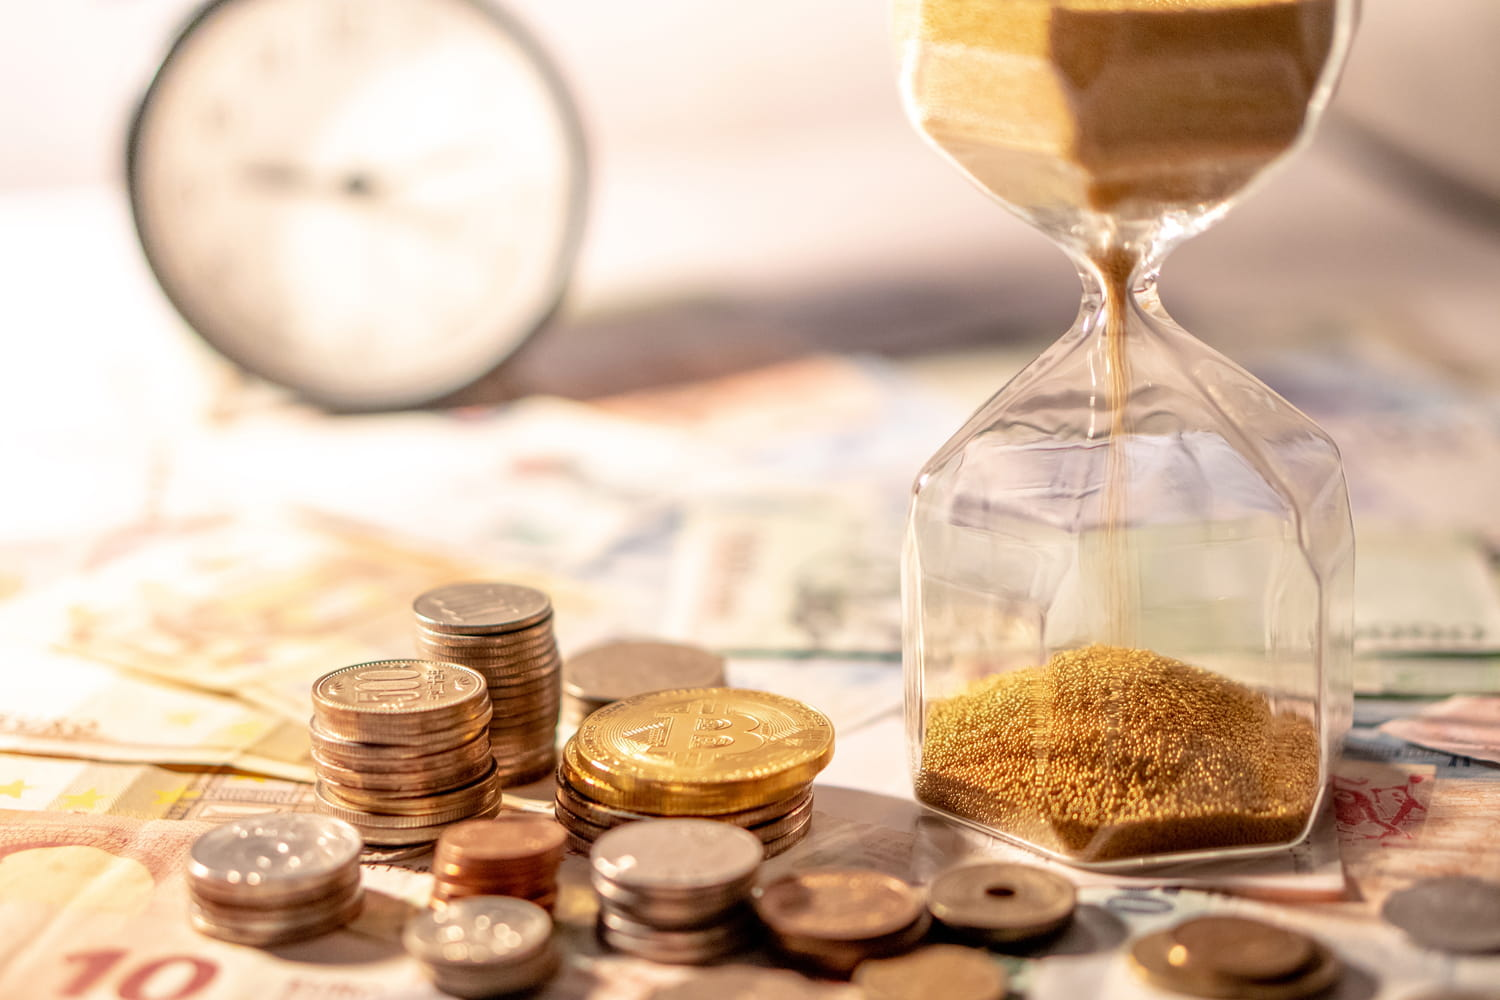 Time to market: définition et synonyme